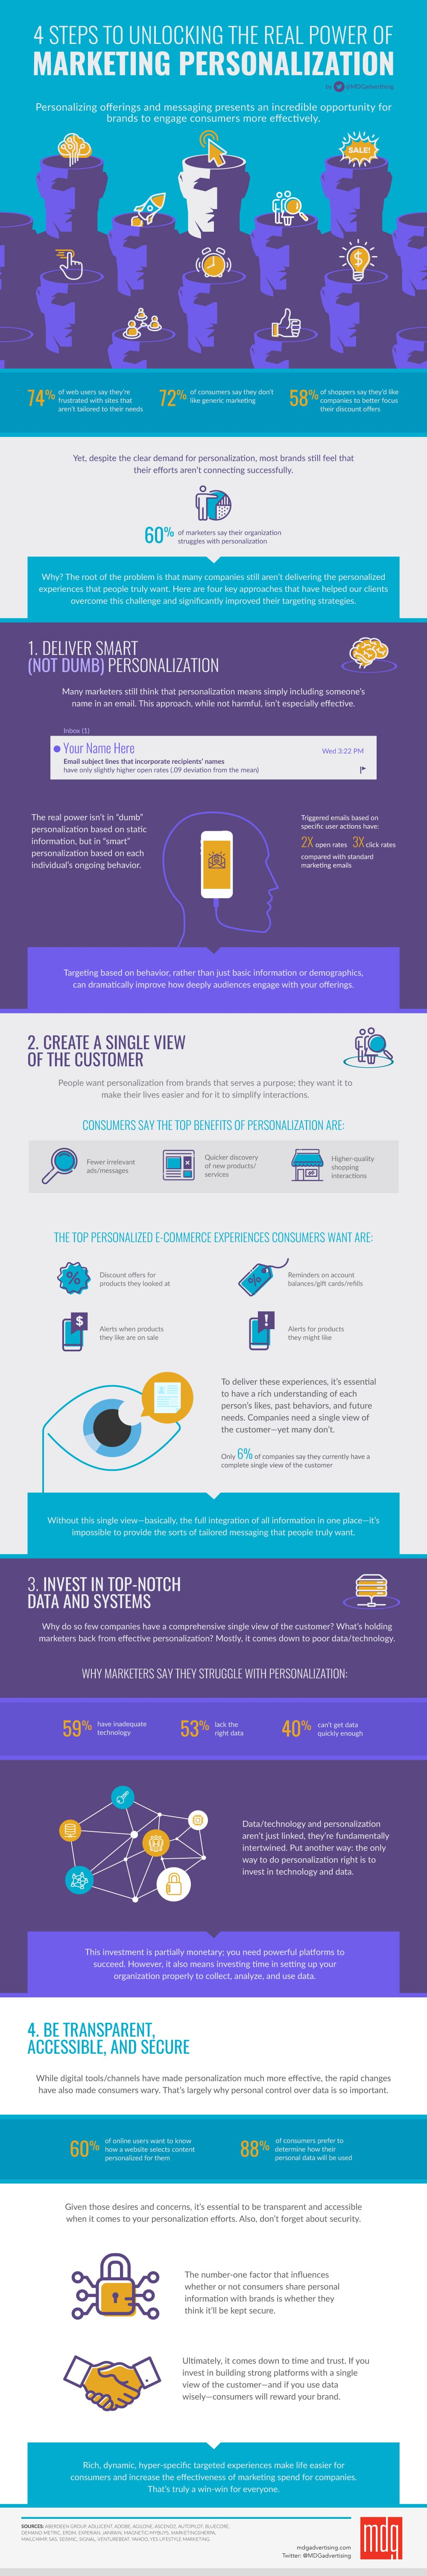 Marketing Personalization Steps Guide Infographic